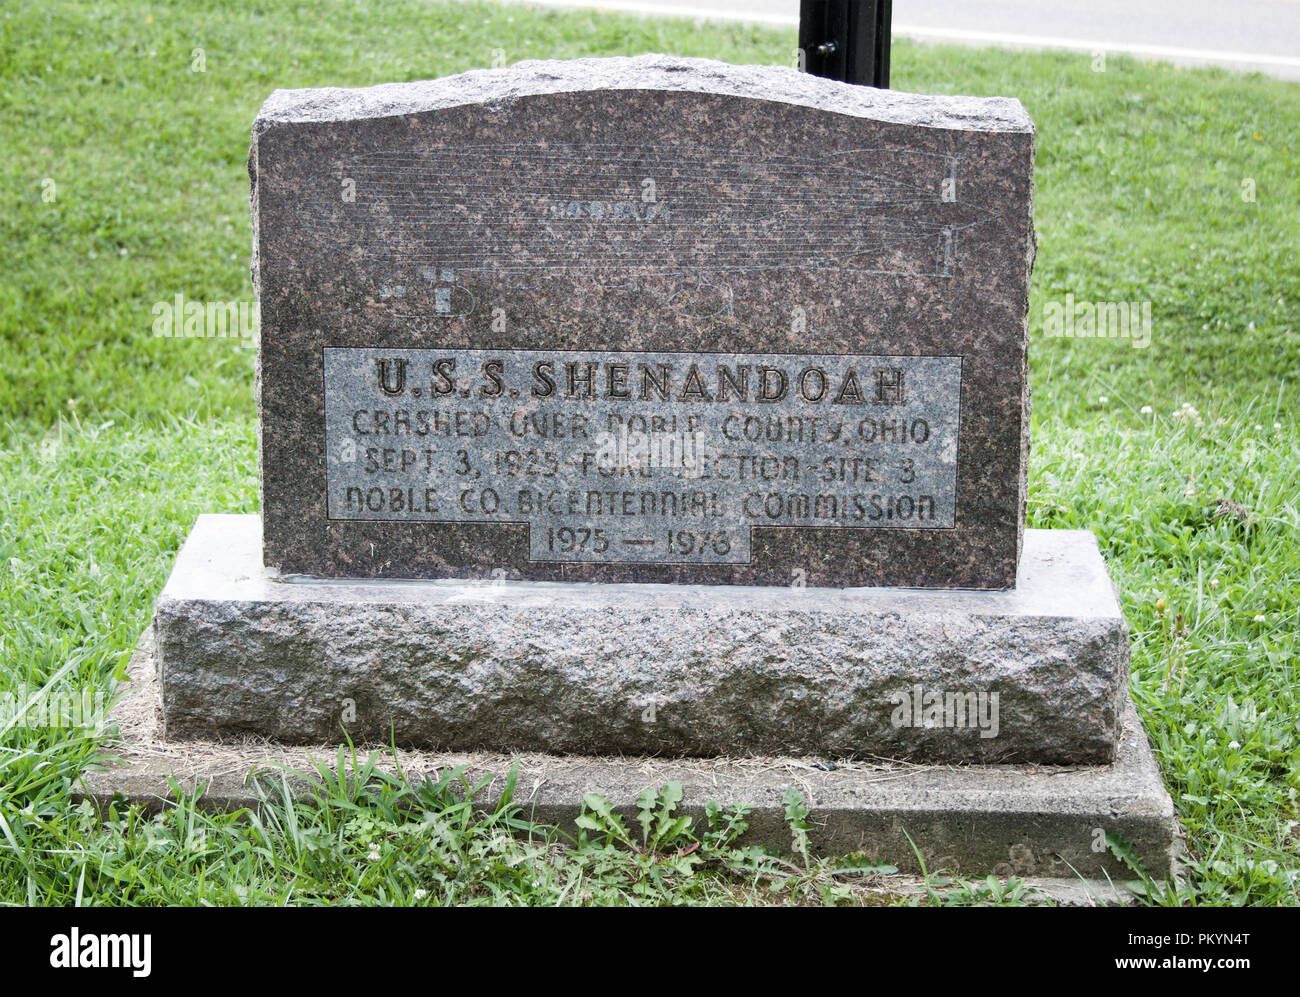 U.S. Navy Shenandoah Air Disaster in Ava Ohio - Stock Image